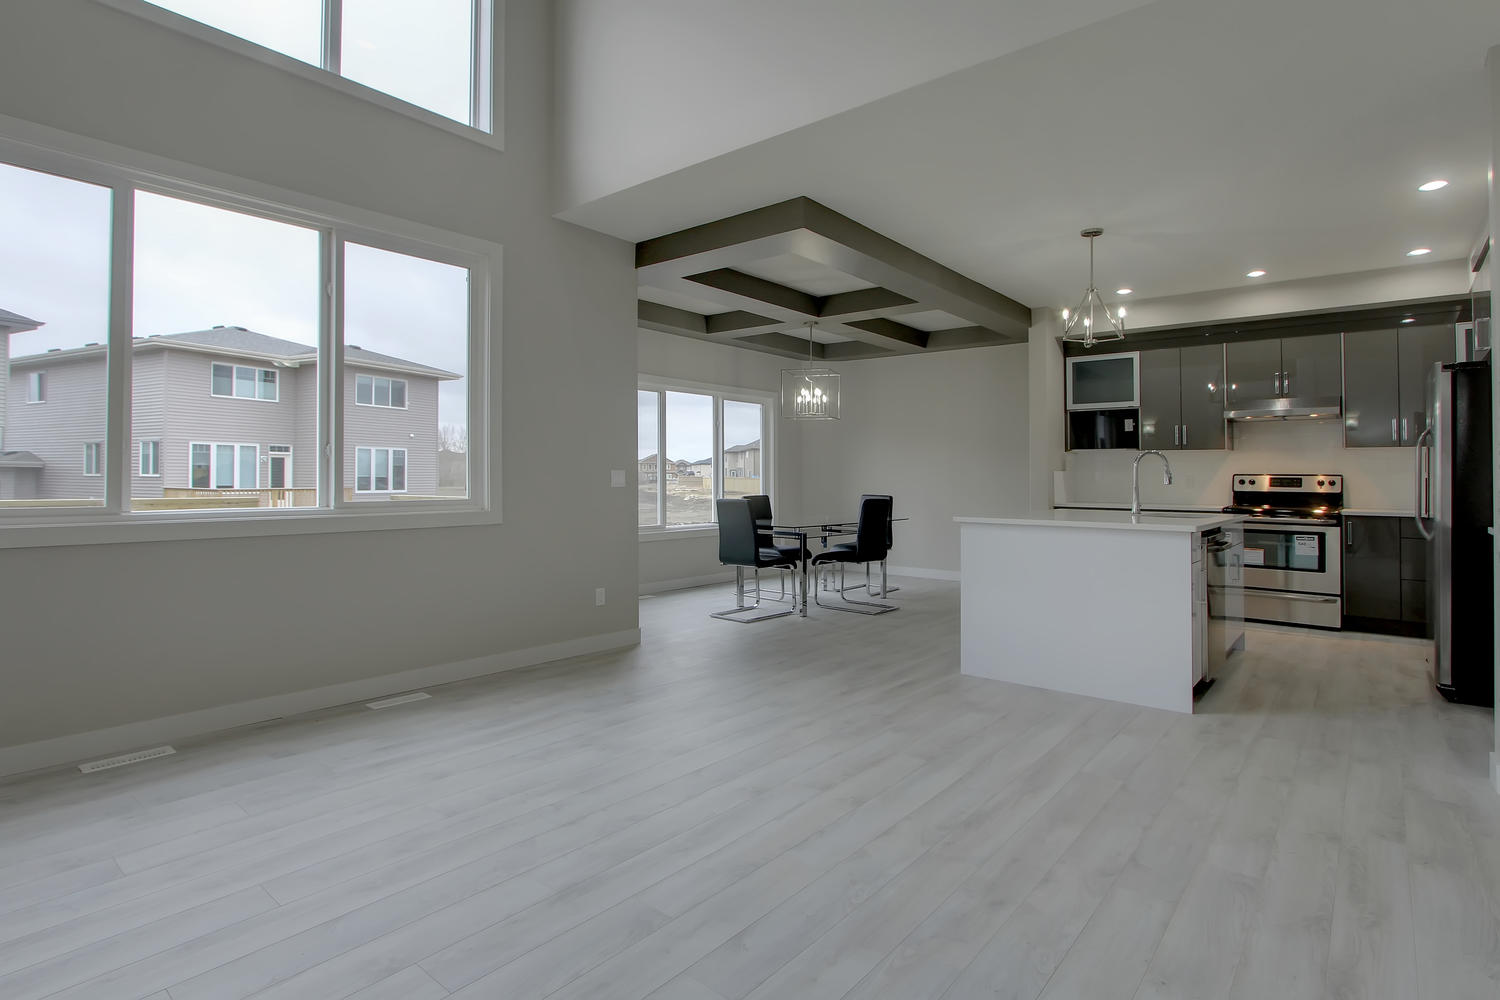 6606 53 Ave Beaumont AB T4X-large-014-92-Main Living Area-1500x1000-72dpi.jpg